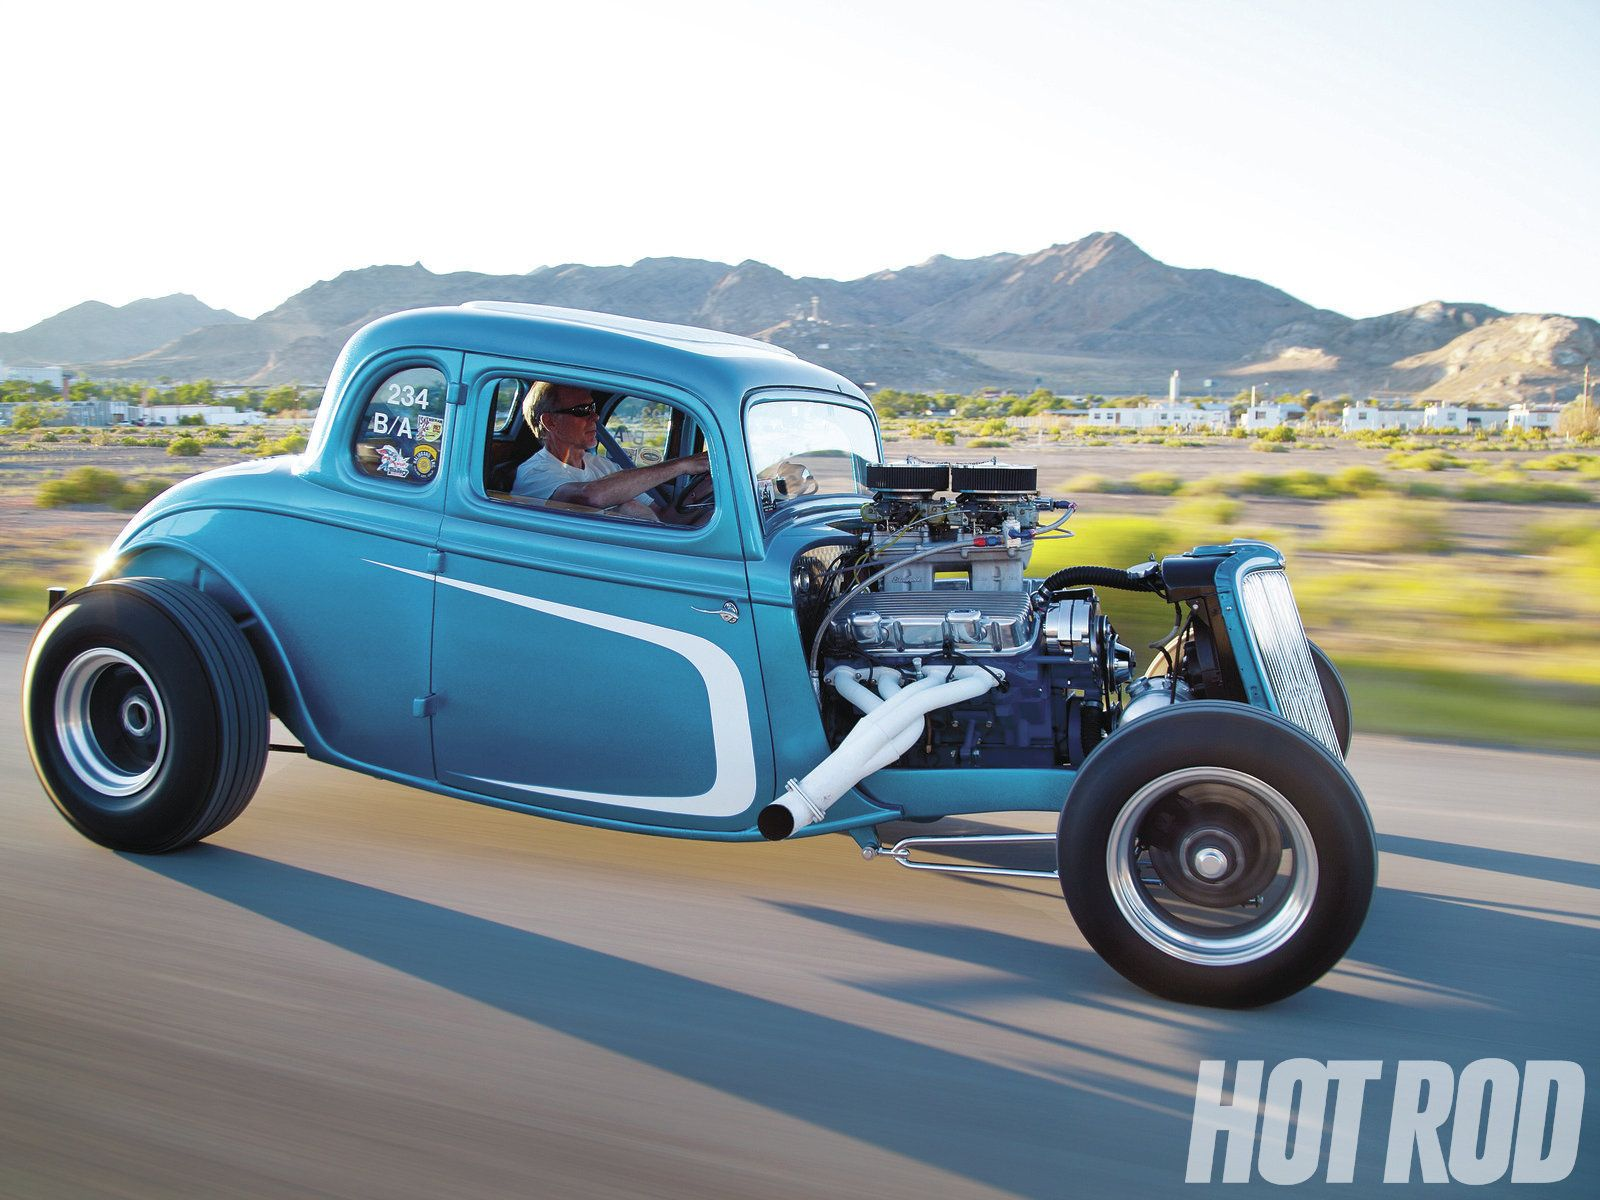 1934 Ford steel 5 W Coupe Hot Rod 454 Chevy | The H.A.M.B.